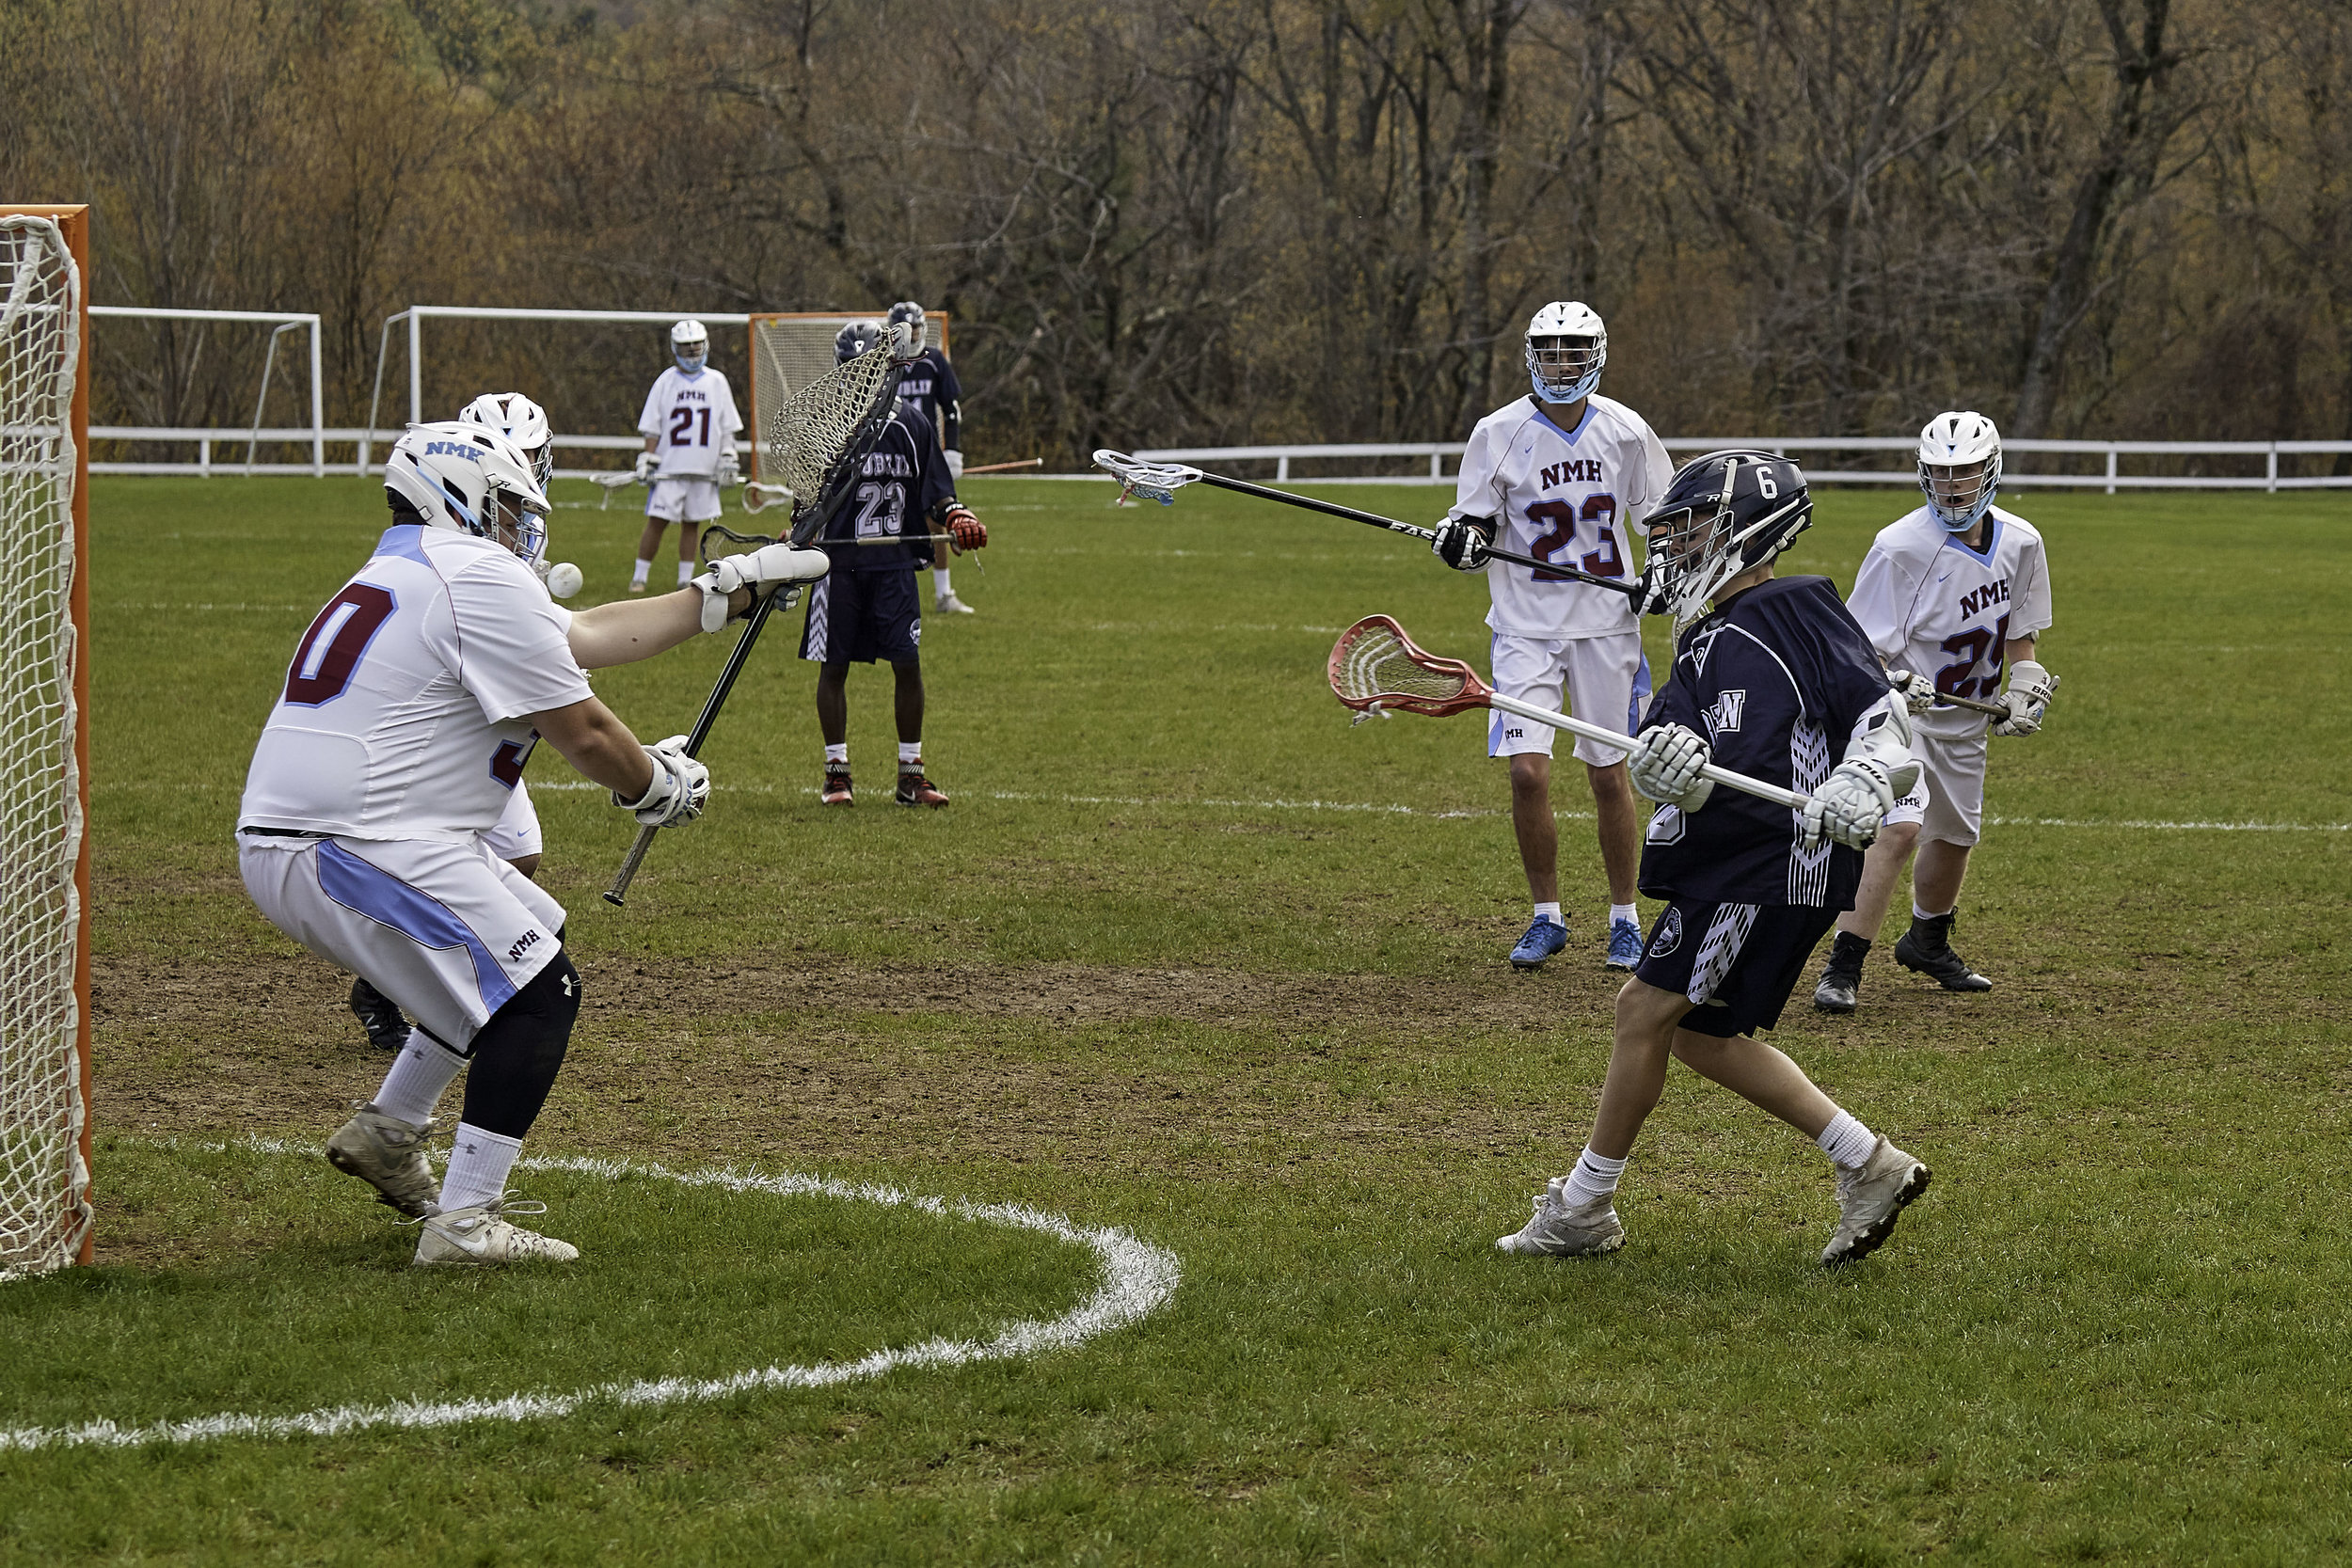 Boys Lax vs Northfield Mount Hermon JV - May 15 2019 - 0018.jpg